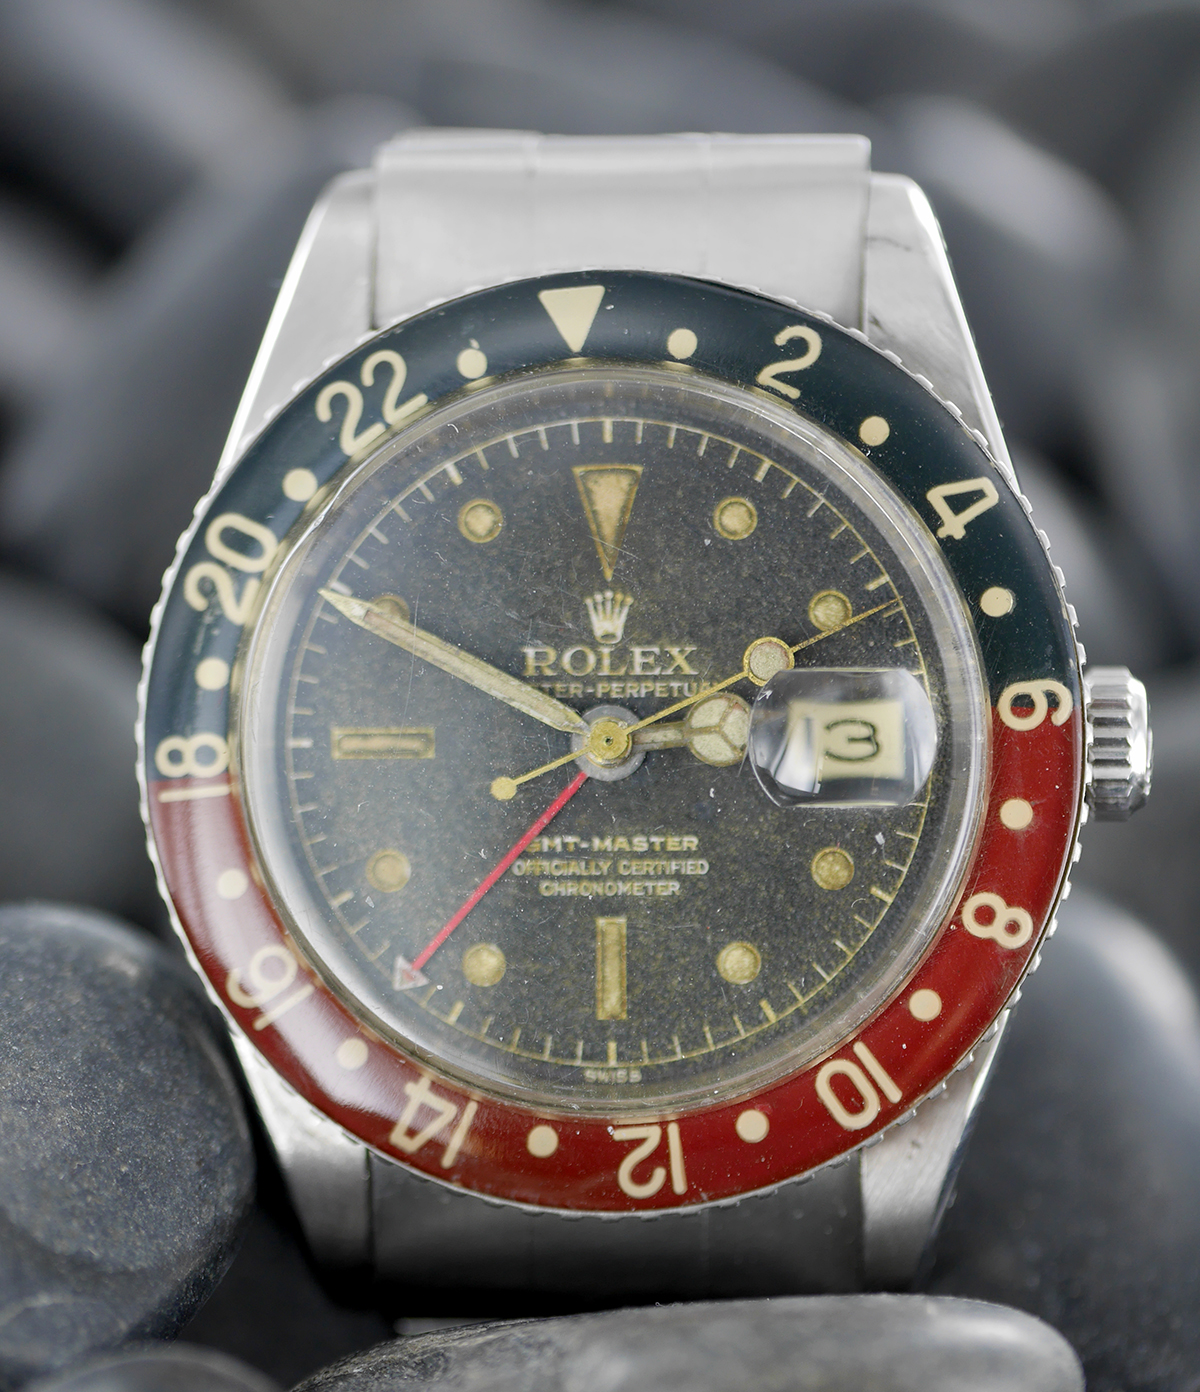 dating a rolex gmt The date change is linked to the local time thus, the date window always displays the current date  gmt-master ii model rolex service using your watch.